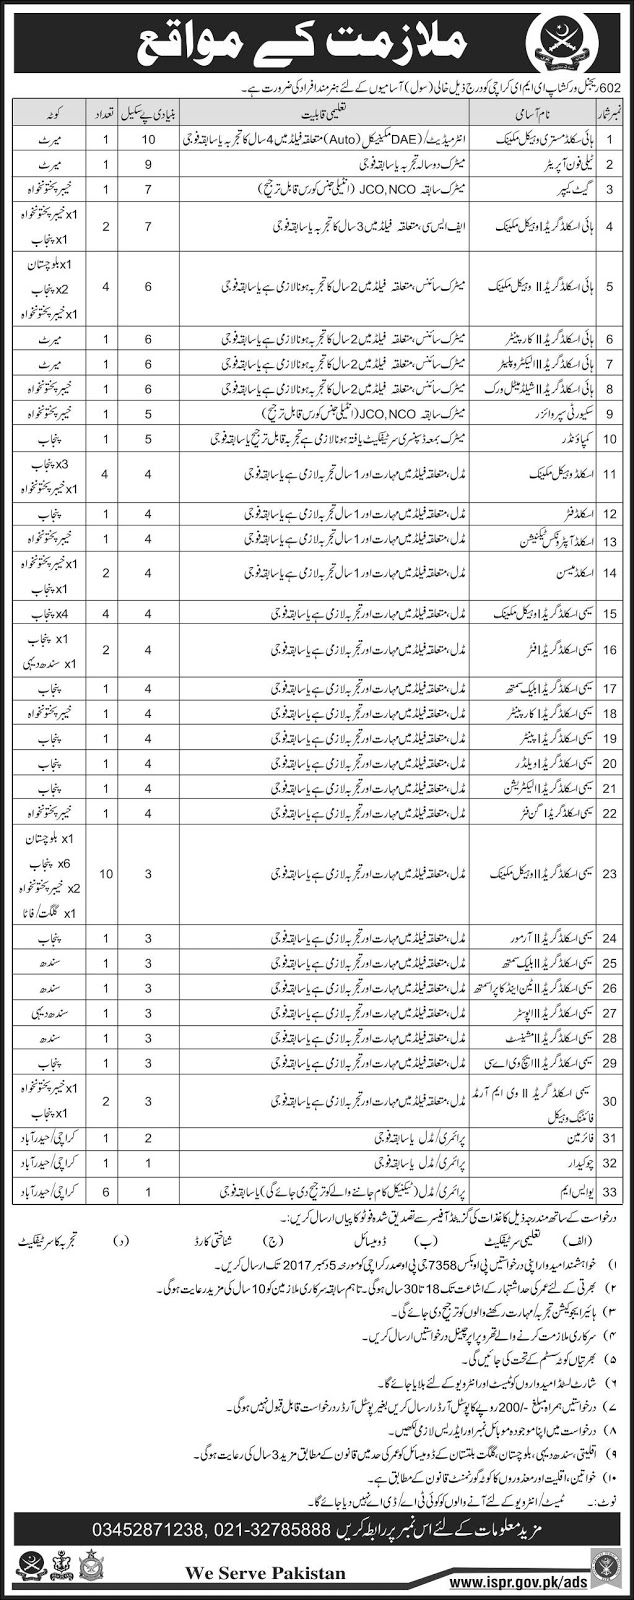 602 Regional Workshop EME Karachi jobs 23 Nov 2017